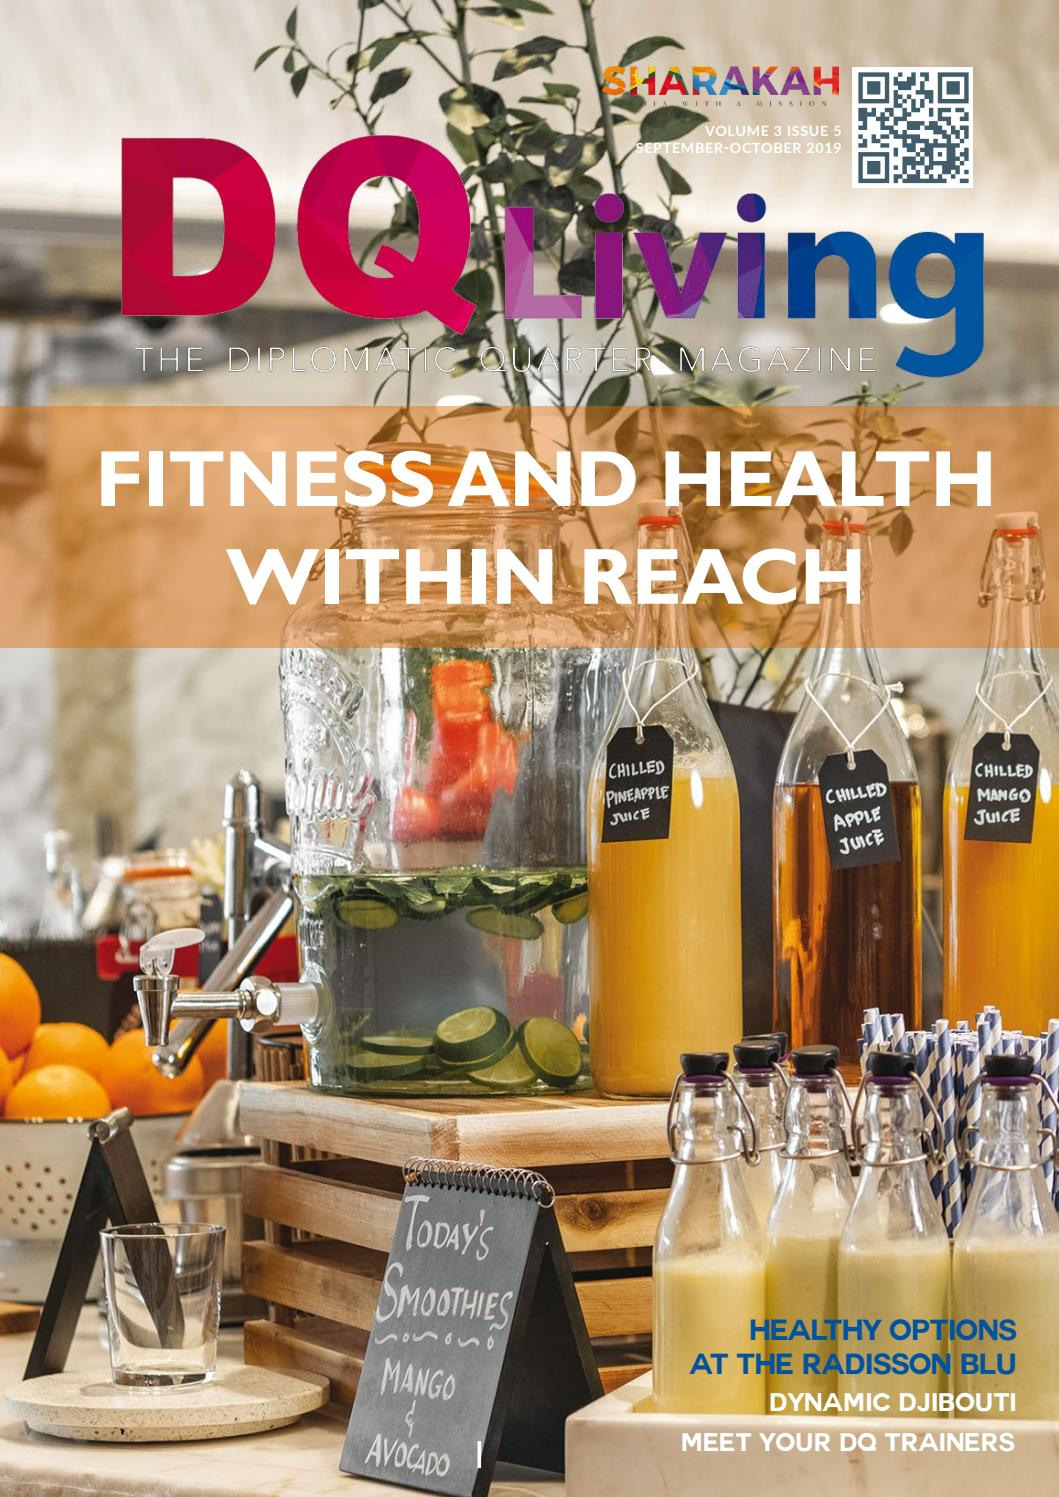 Vol. 3 Iss. 5 DQ Living: Fitness and Health Within Reach by